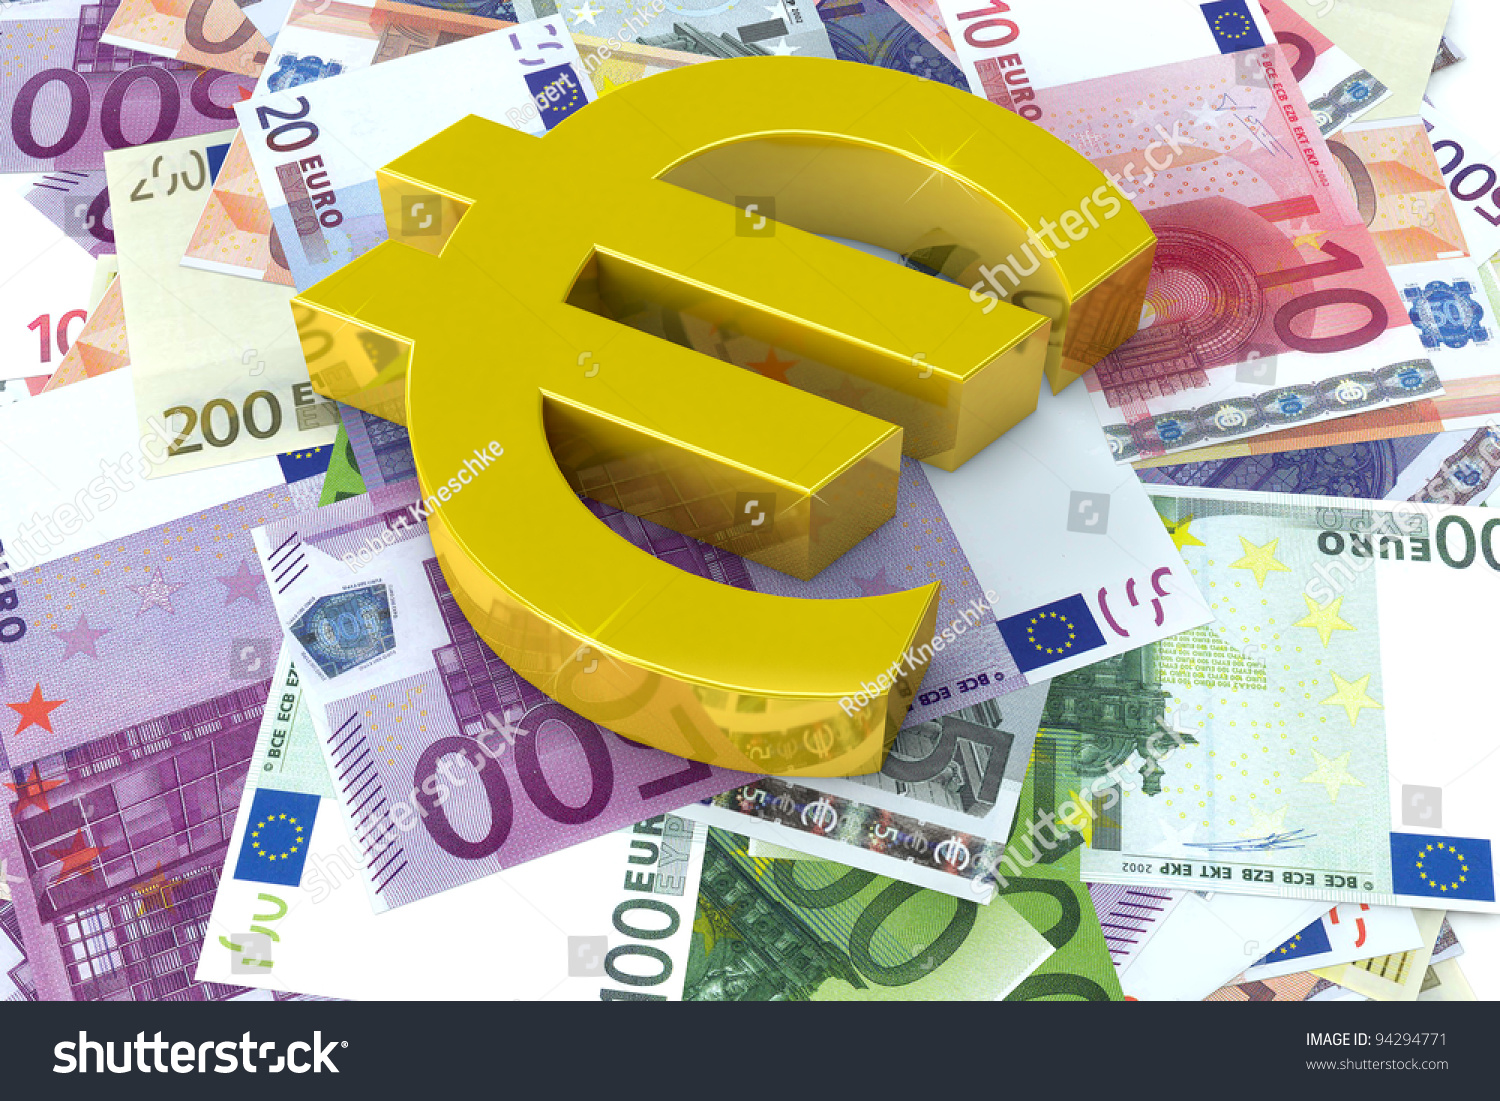 Euro symbol on many bills same stock illustration 94294771 euro symbol on many bills of the same currency biocorpaavc Images